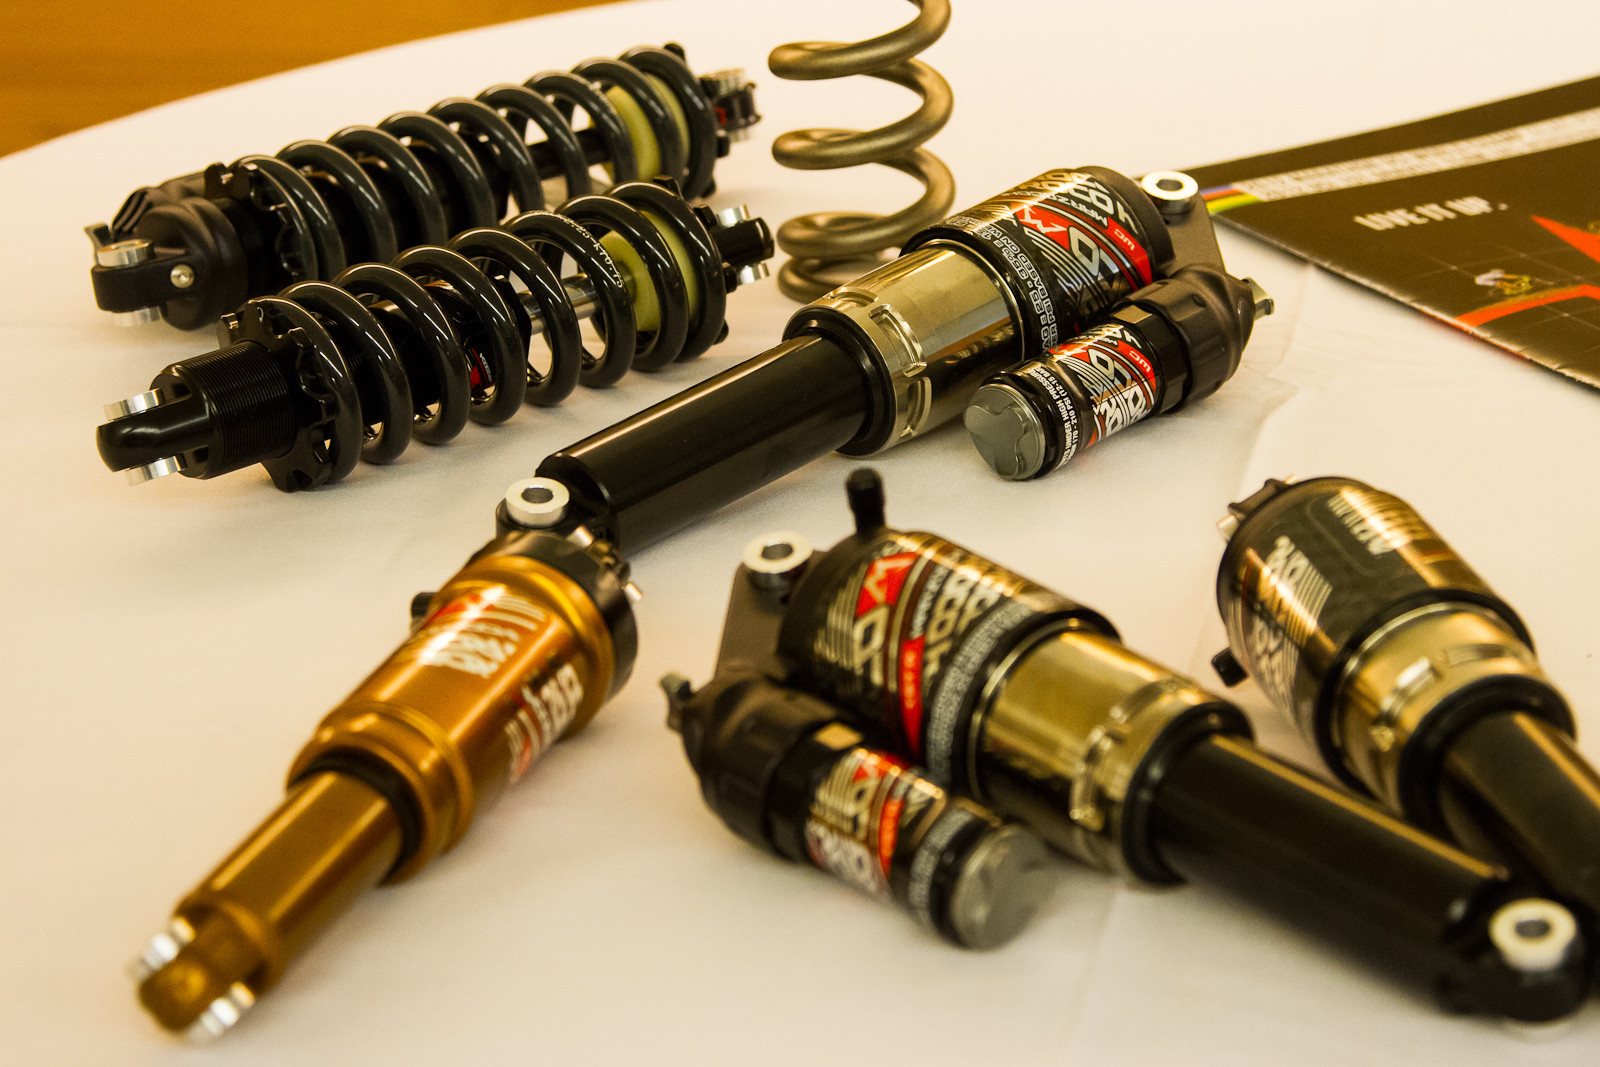 2013 and 2014 Marzocchi Rear Shocks - 2013 and 2014 Products from Taichung Bike Week - Mountain Biking Pictures - Vital MTB